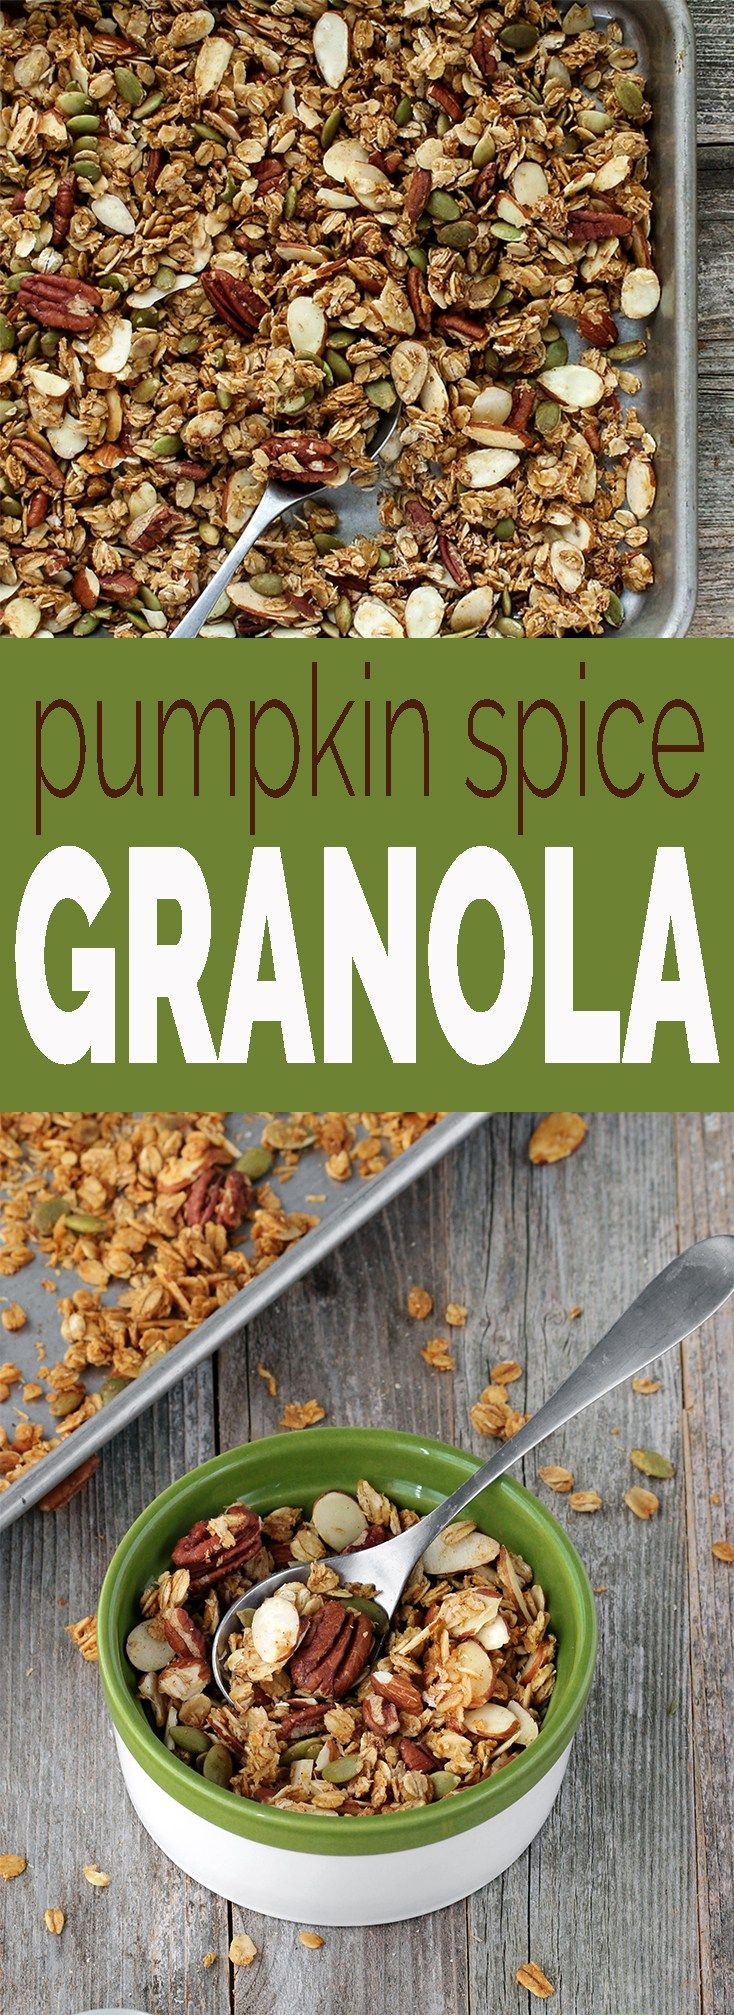 pumpkin butter pepita granola recipes dishmaps pumpkin butter pepita ...